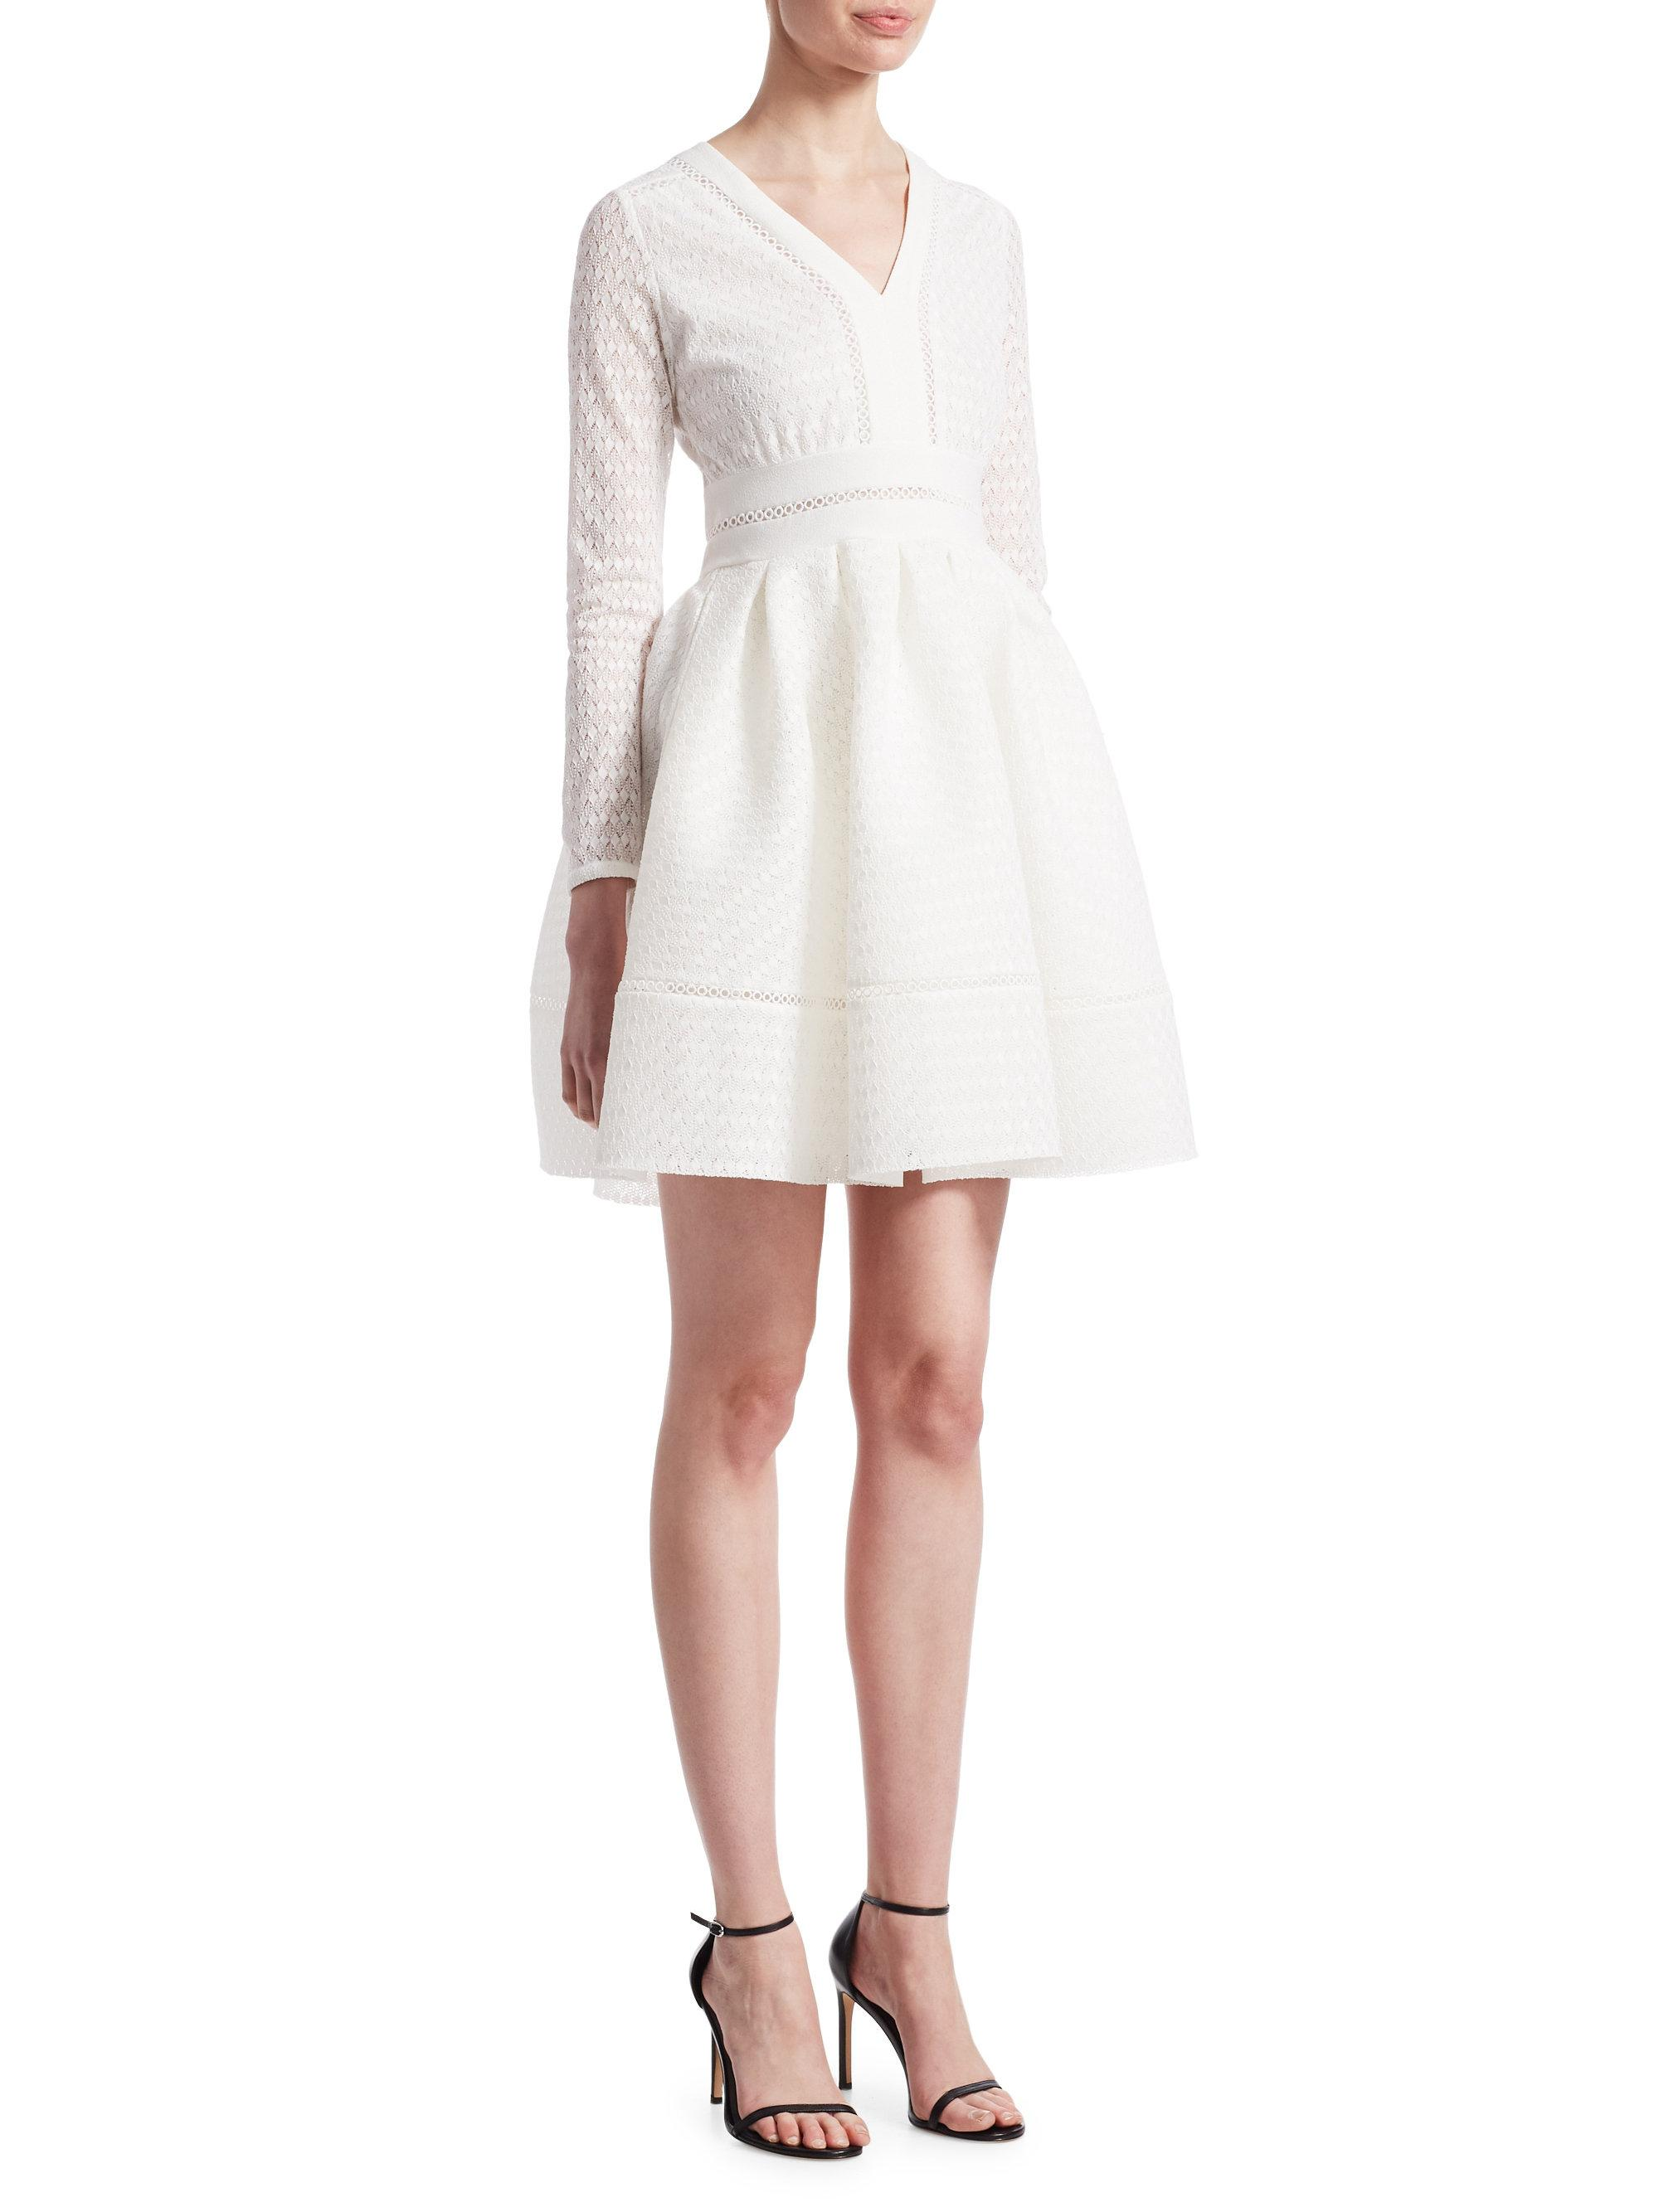 556196d10347 Maje Rossignol Woven Fit-&-flare Dress in White - Lyst